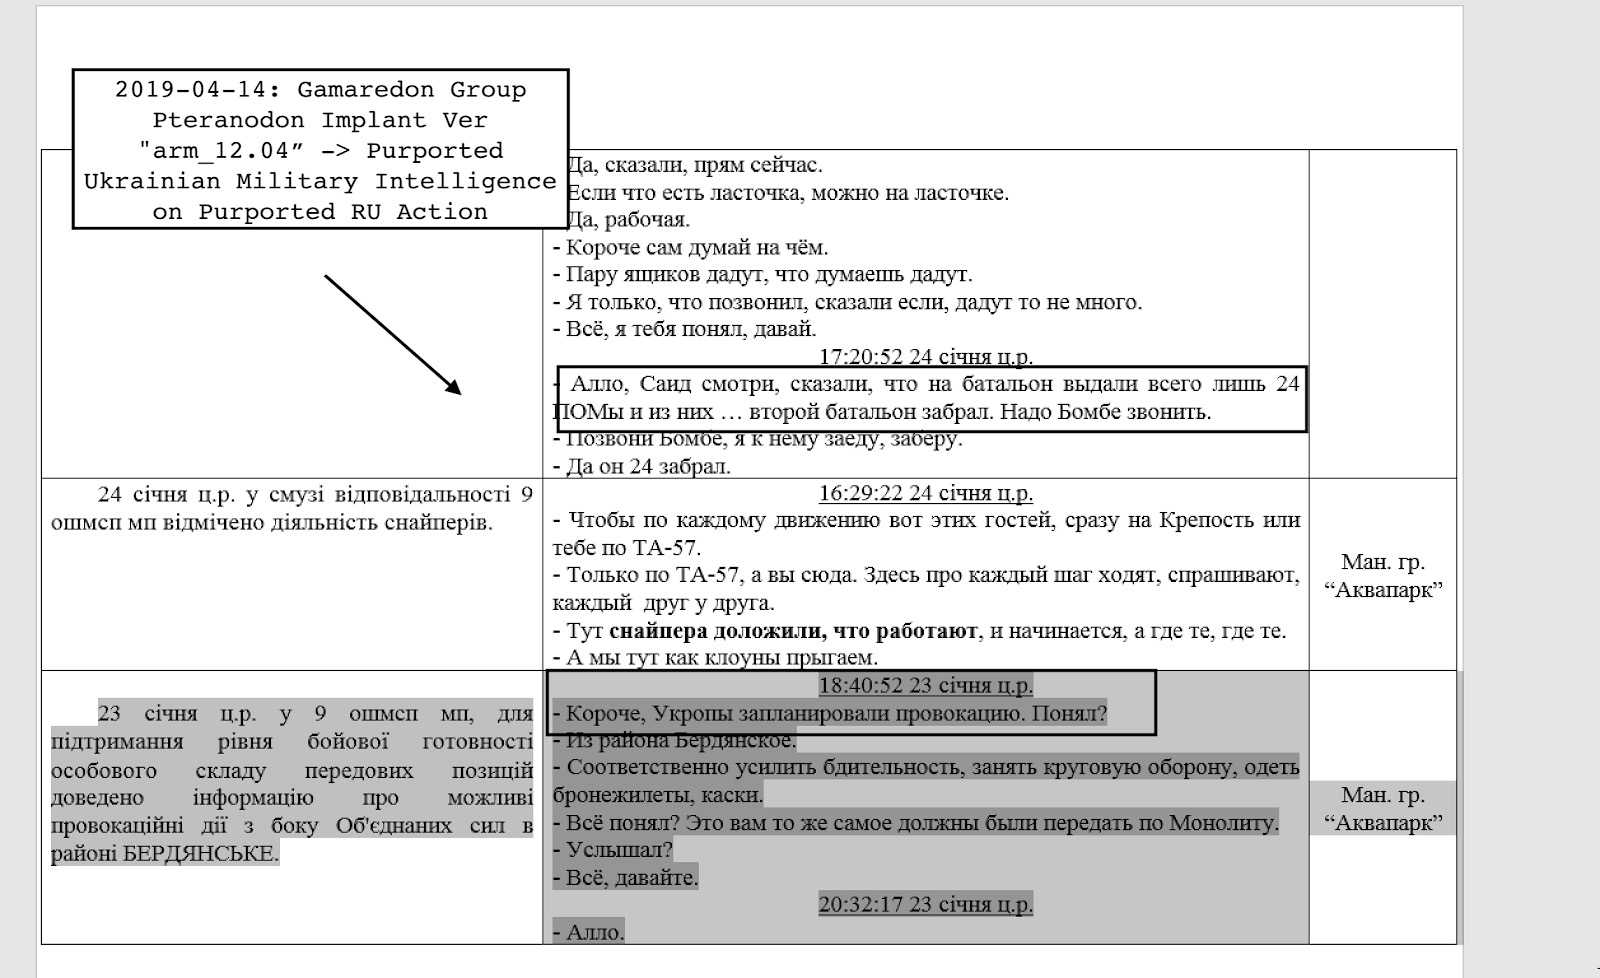 image of Ukrainian military intelligence report on purported Russian cyber warfare action